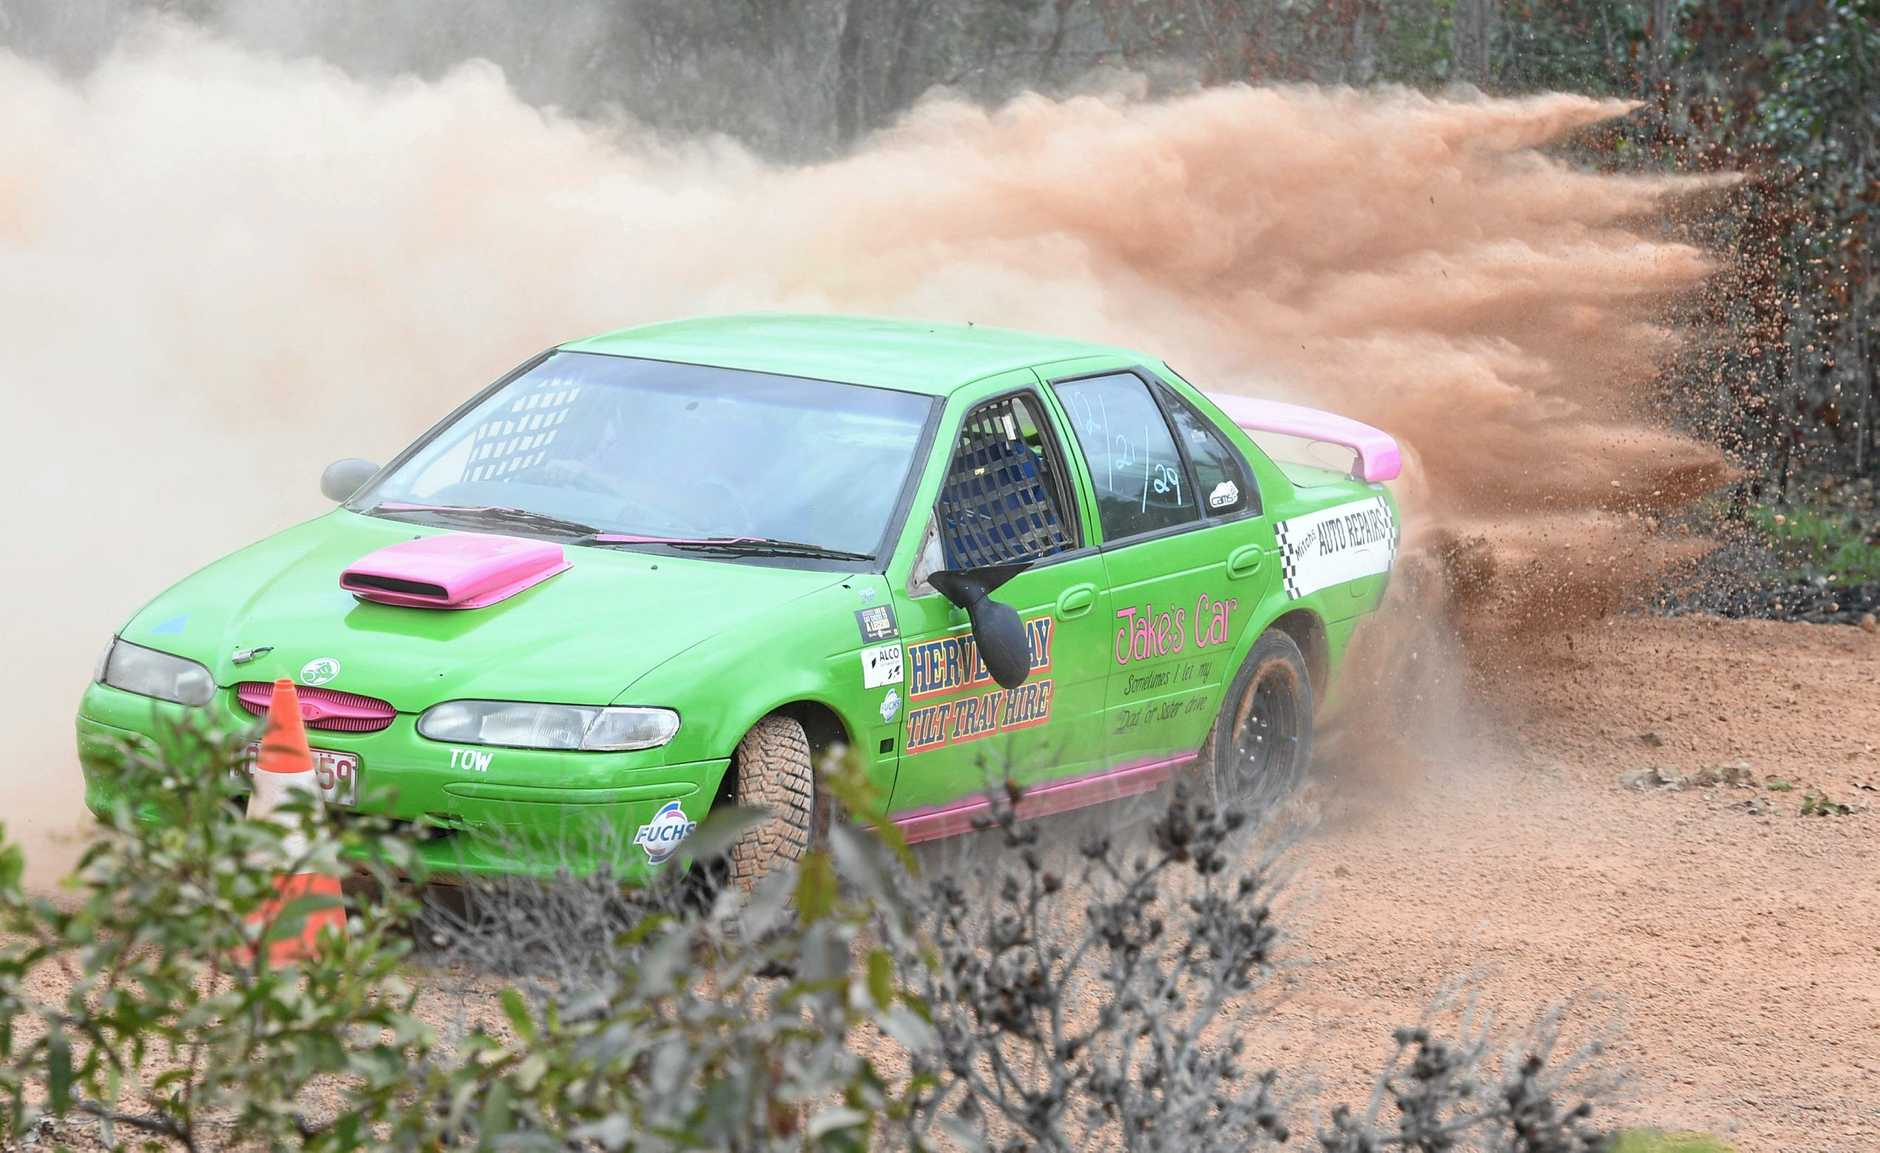 Wide Bay Motor Complex - Khana Cross. Paul Reece in the Ford Falcon.